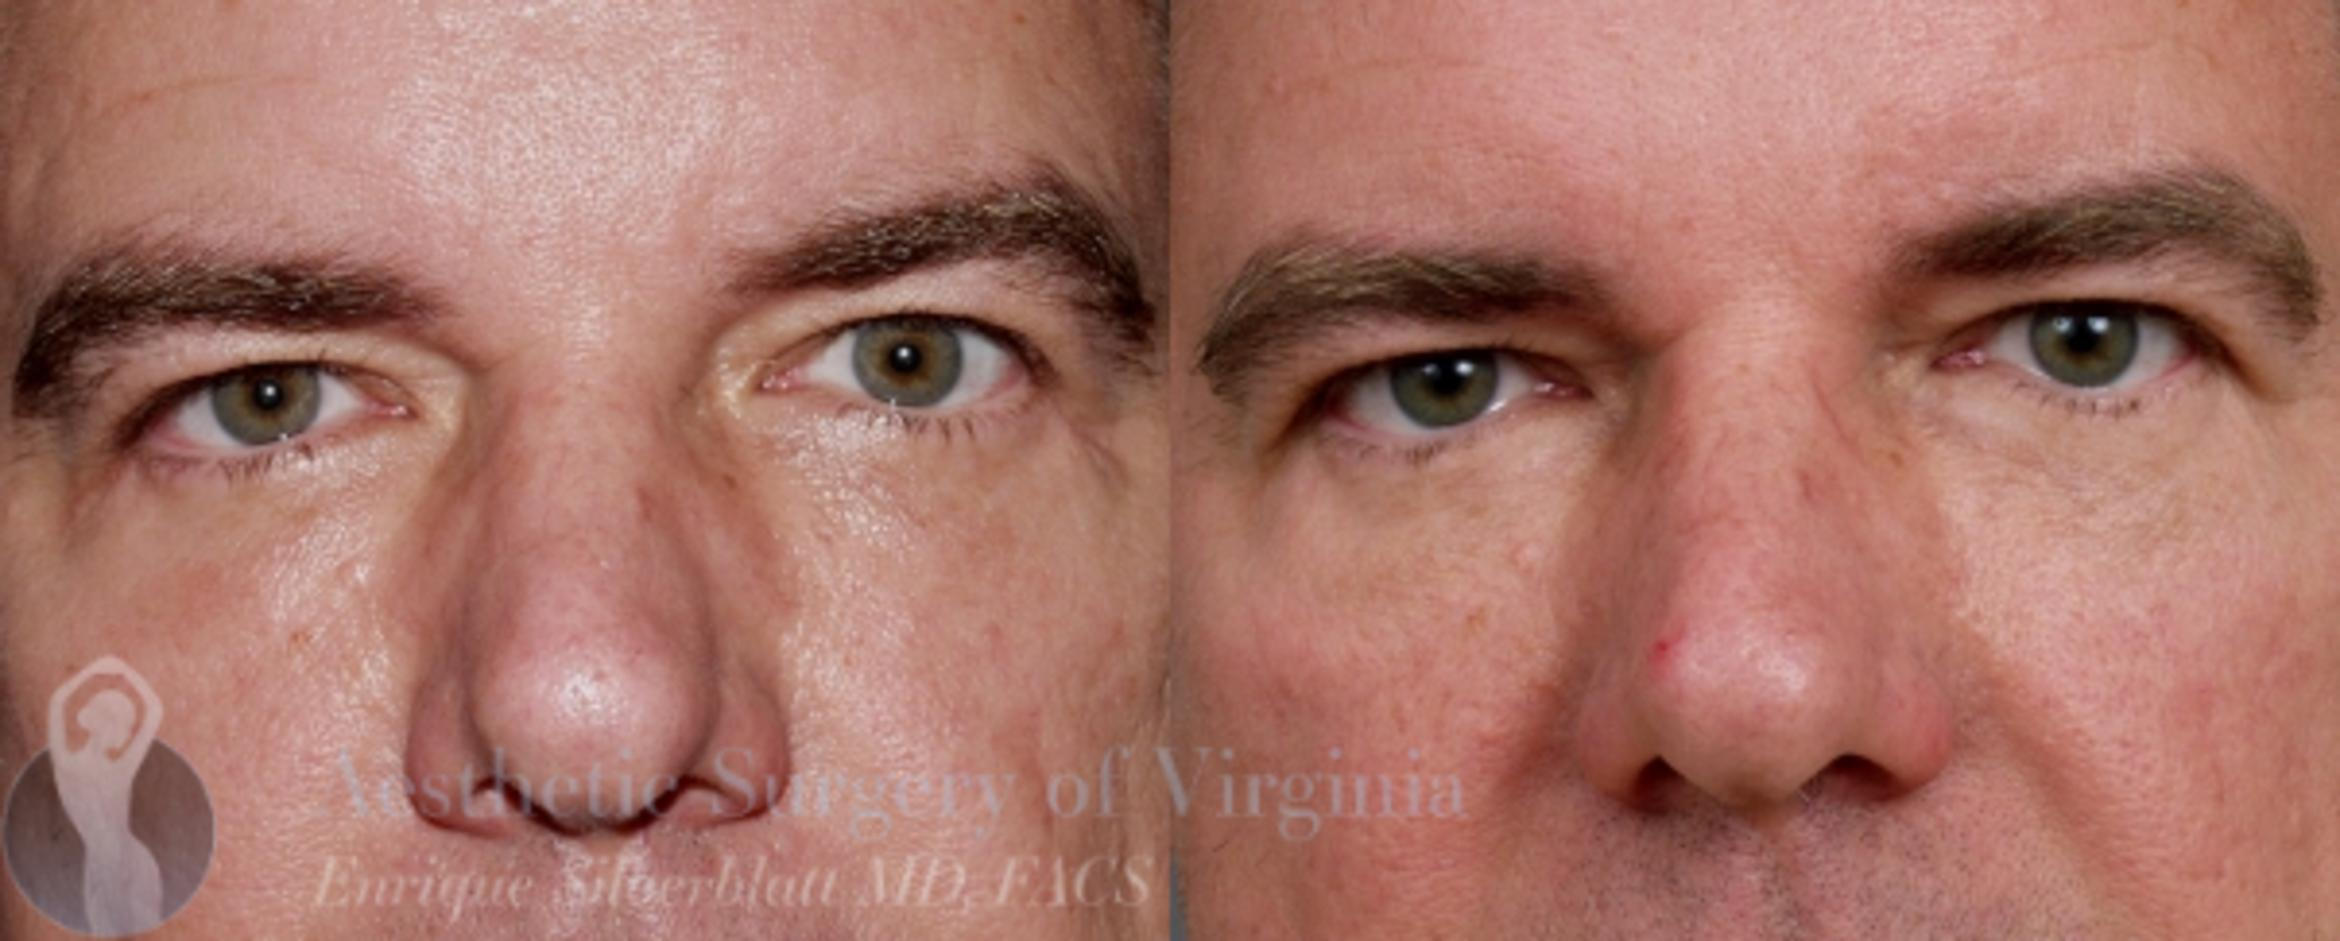 Eyelid Surgery Case 43 Before & After View #1 | Roanoke, VA | Aesthetic Surgery of Virginia: Enrique Silberblatt, MD